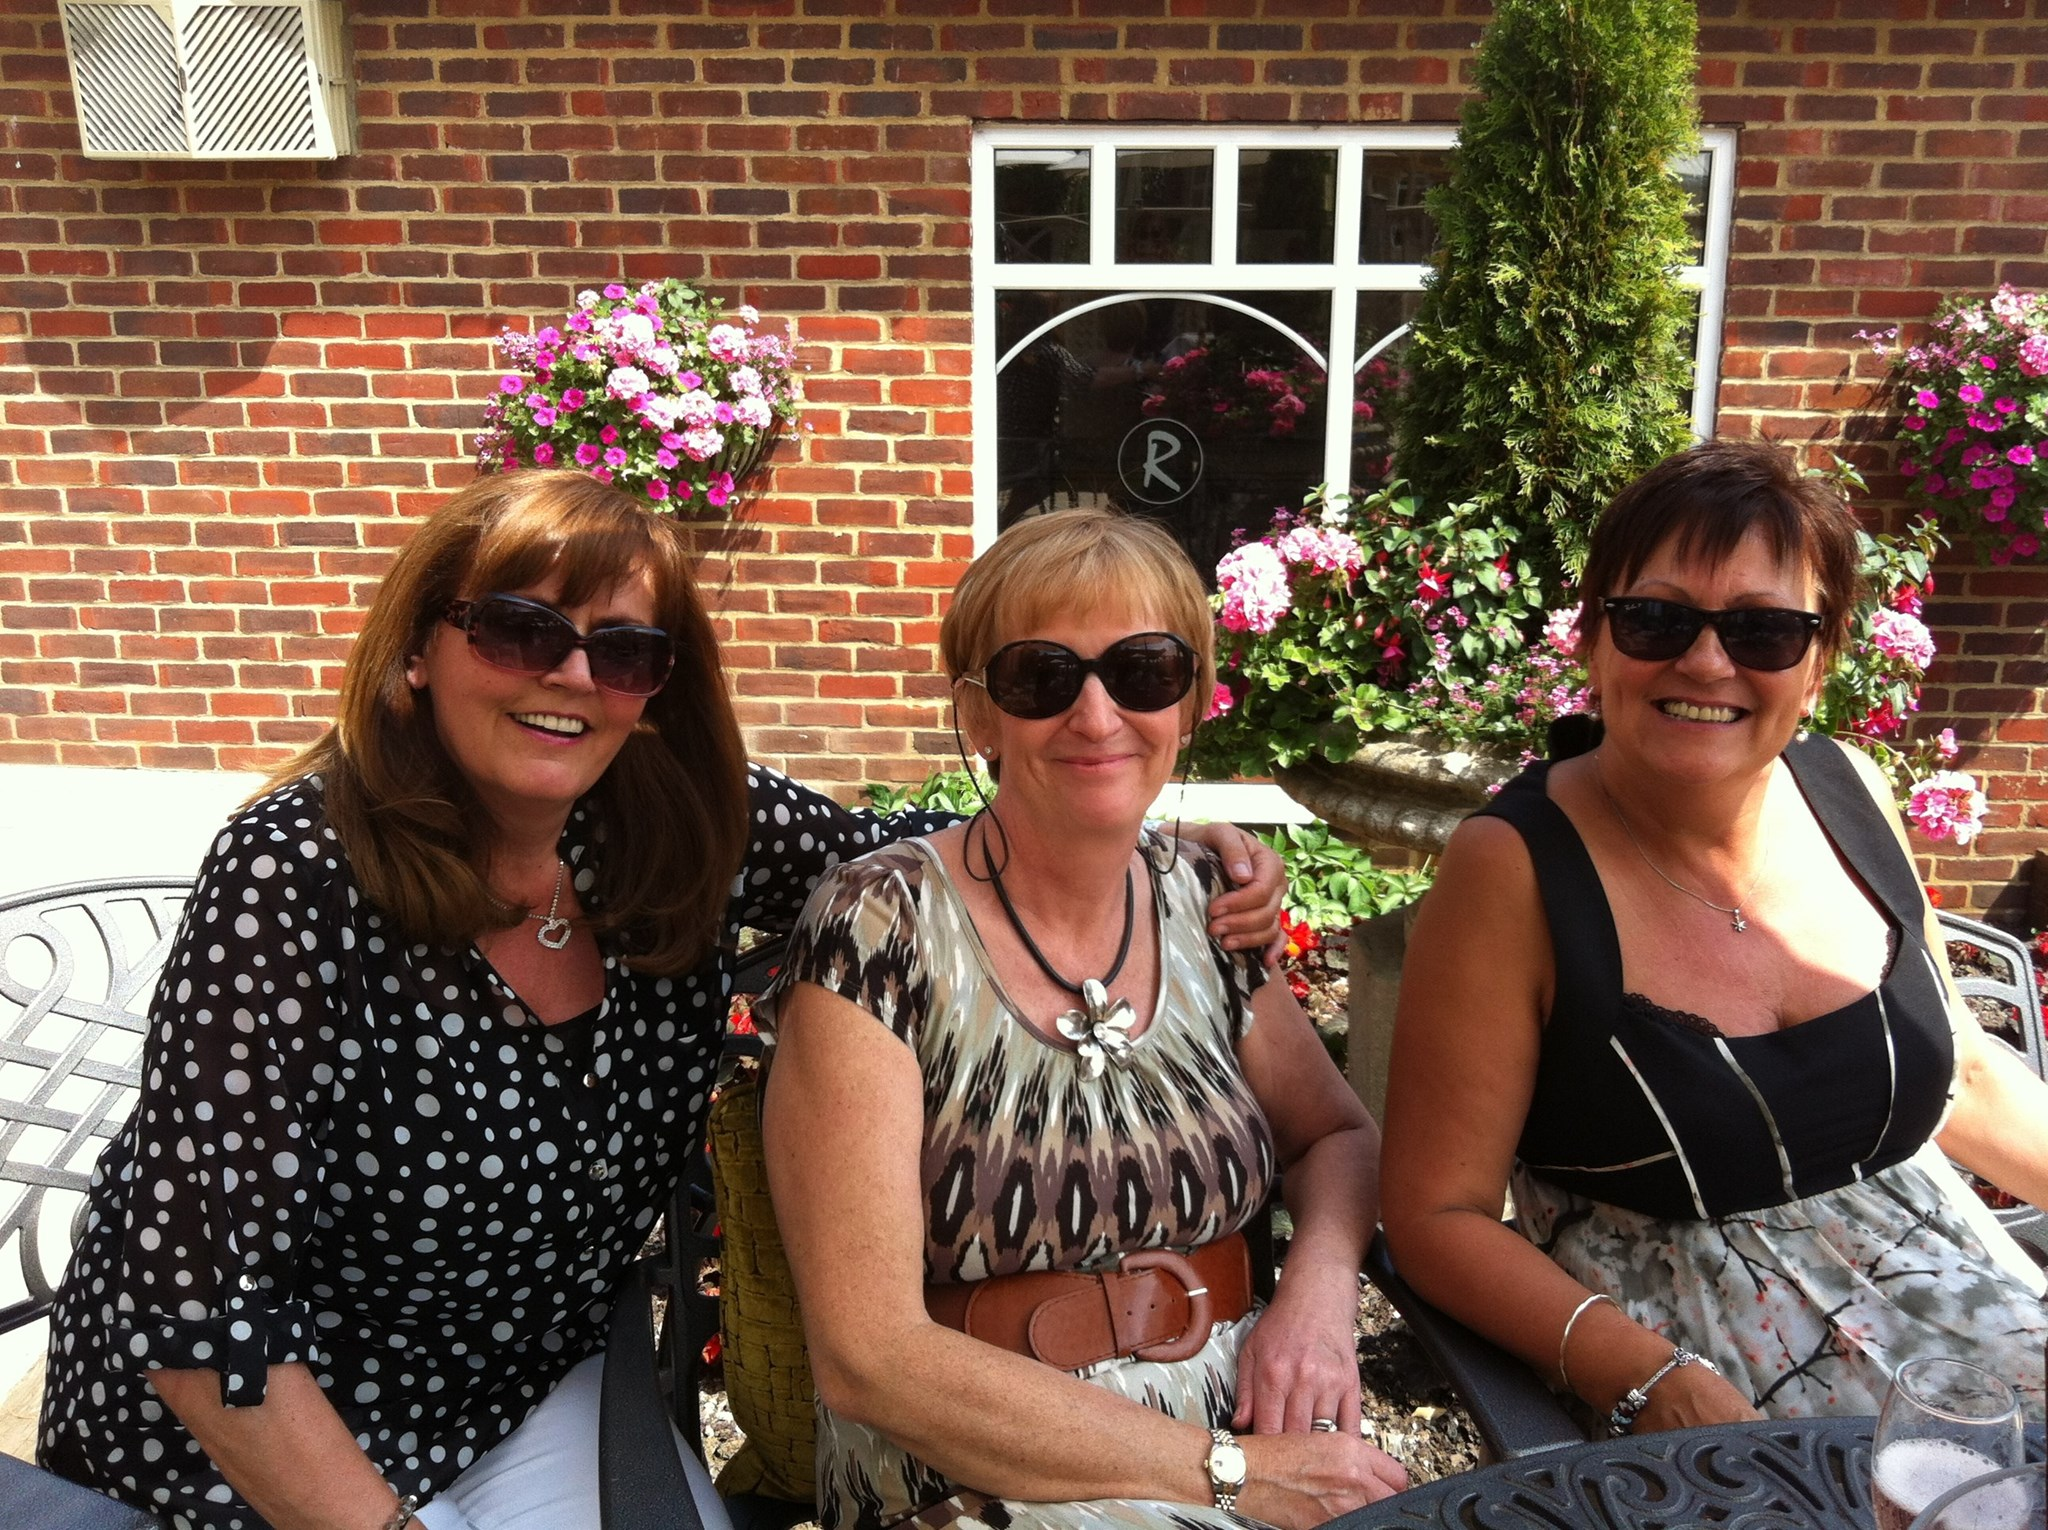 Lovely afternoon with Kim and Jen in Brentwood